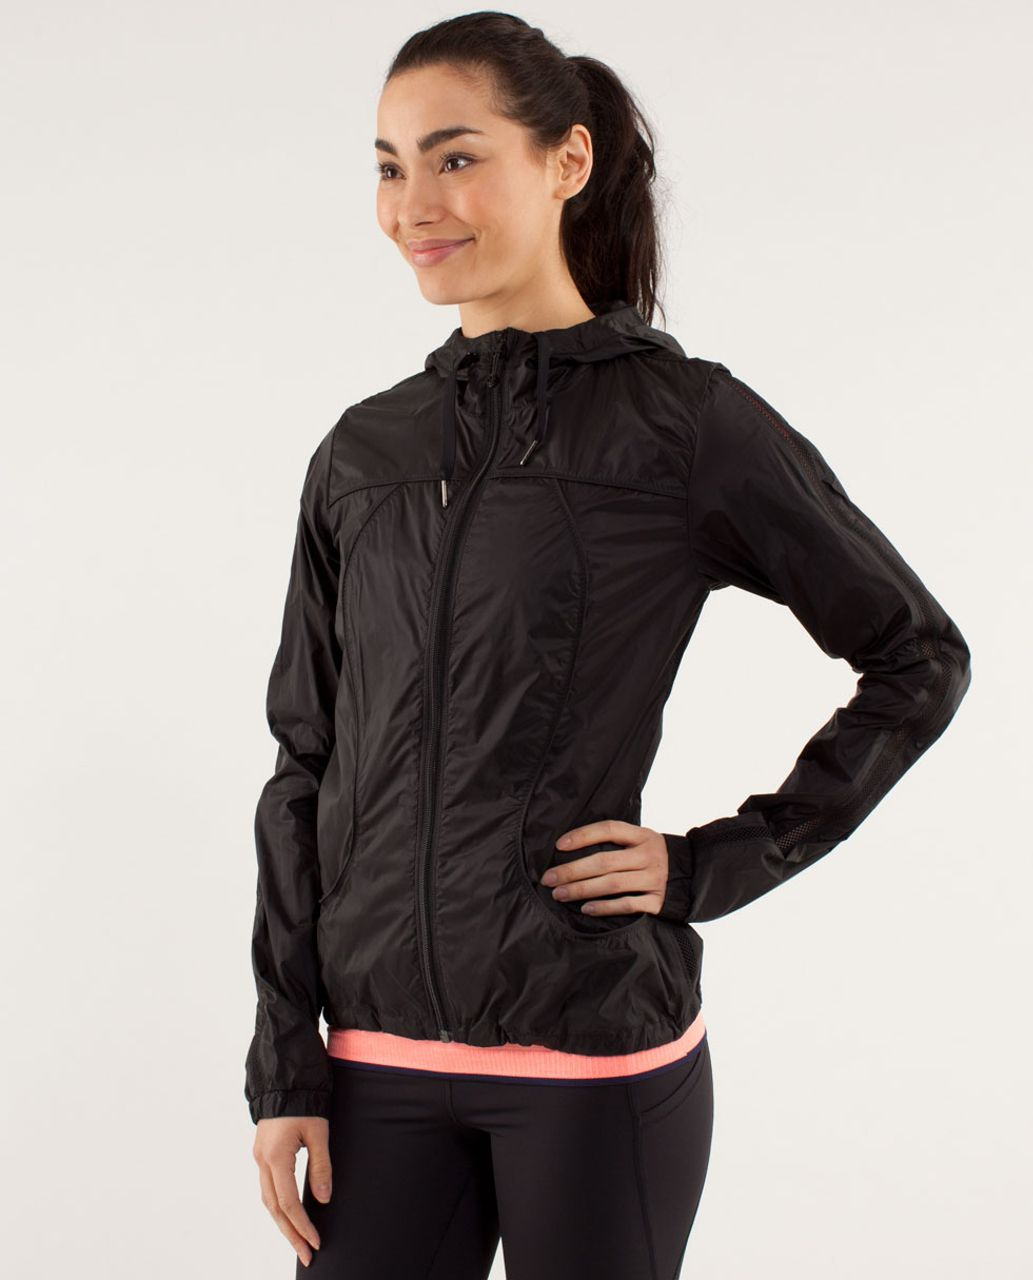 Lululemon Transparent-See Jacket - Black